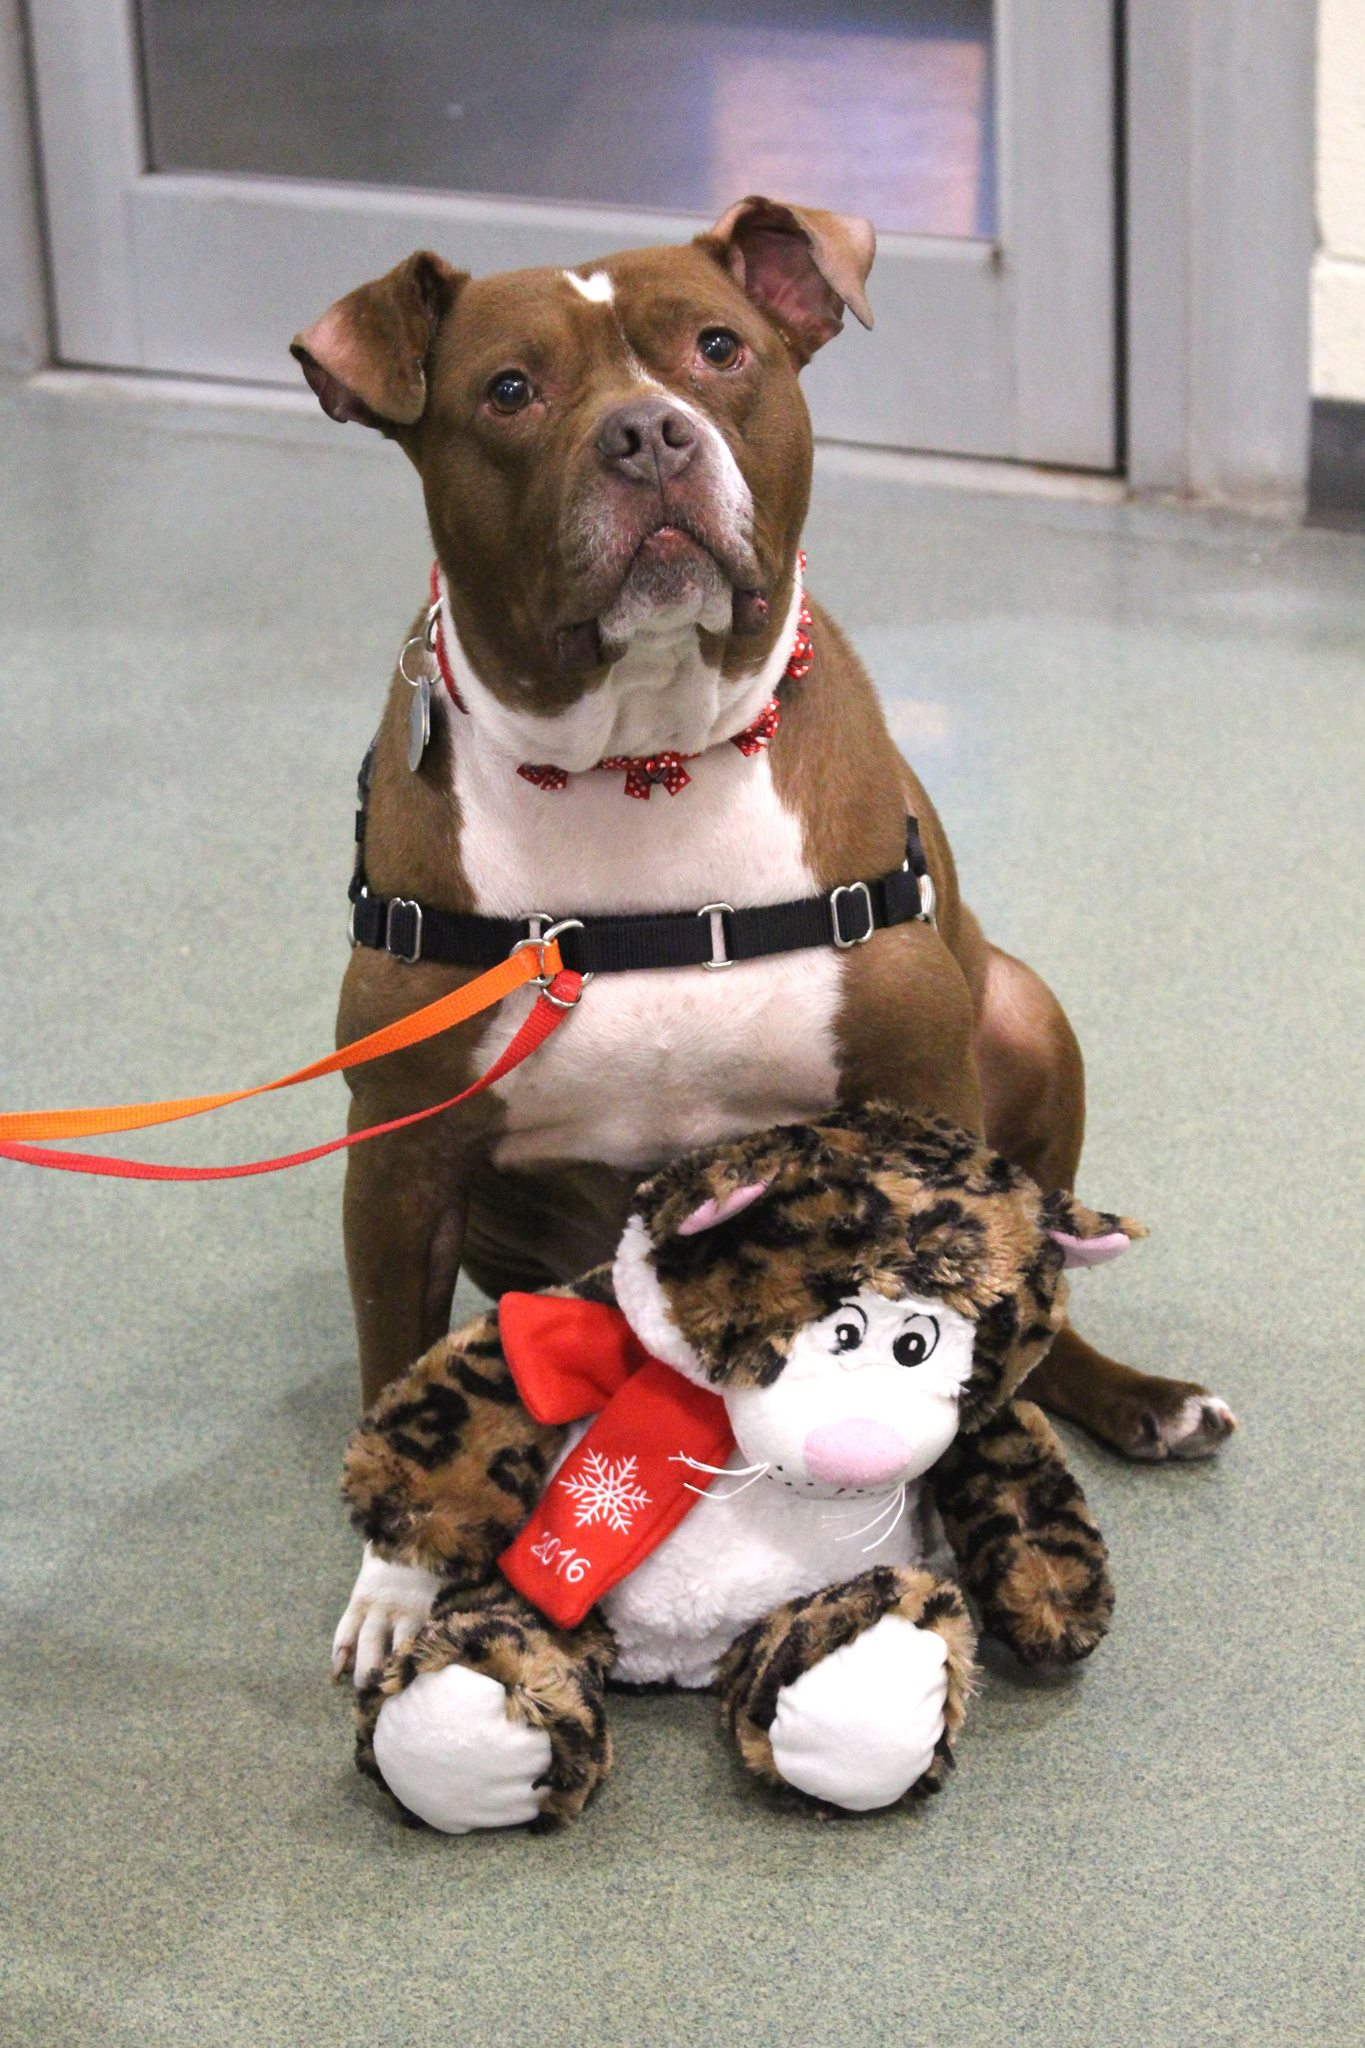 Lady in the shelter with her stuffed animal